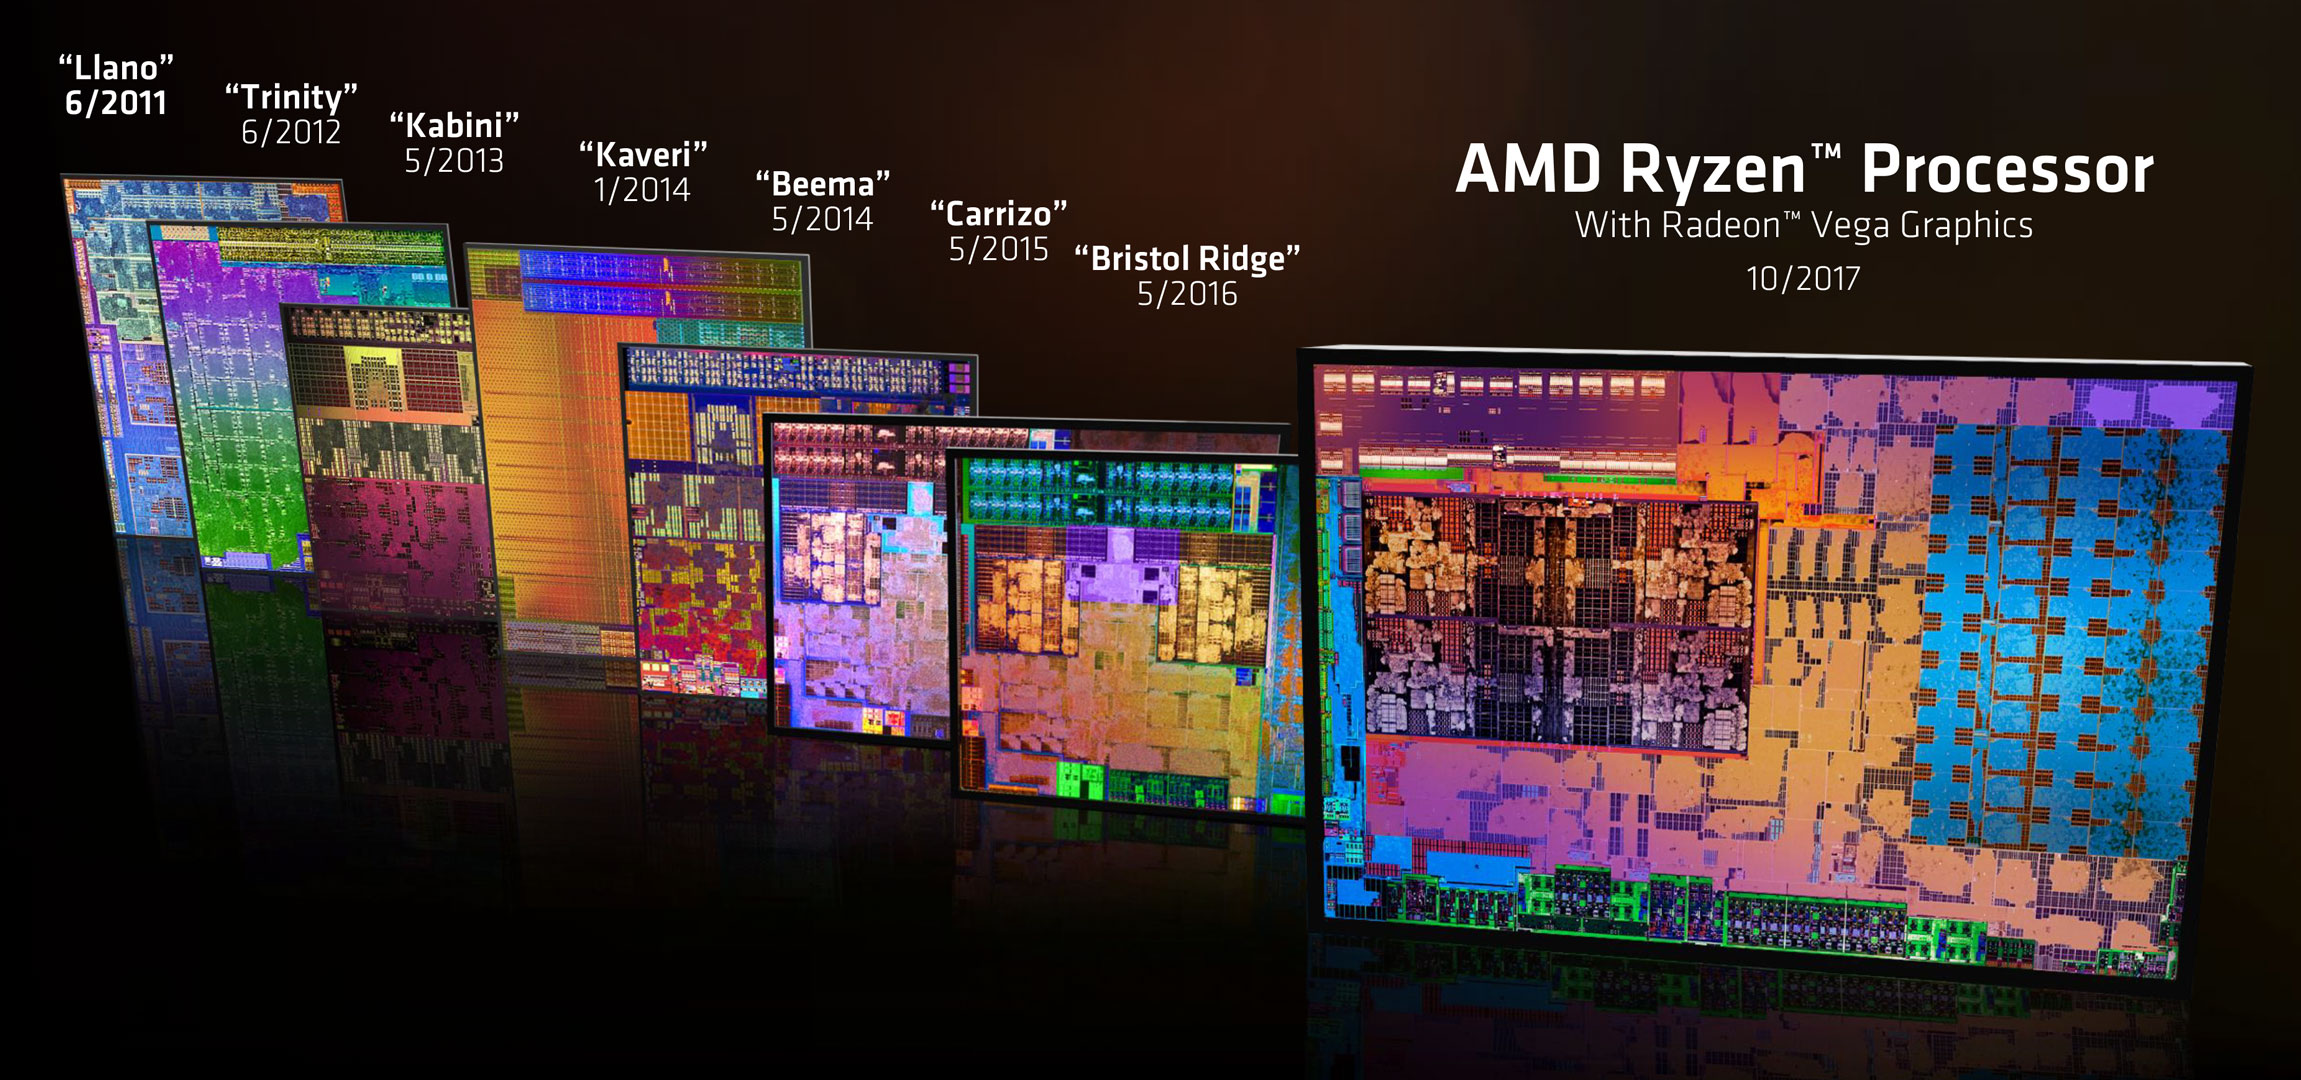 AMD Ryzen Processor with Radeon Graphics Press Deck LEGAL FINAL V 53 copy - AMD Introduces World's Fastest Processor For Ultrabooks